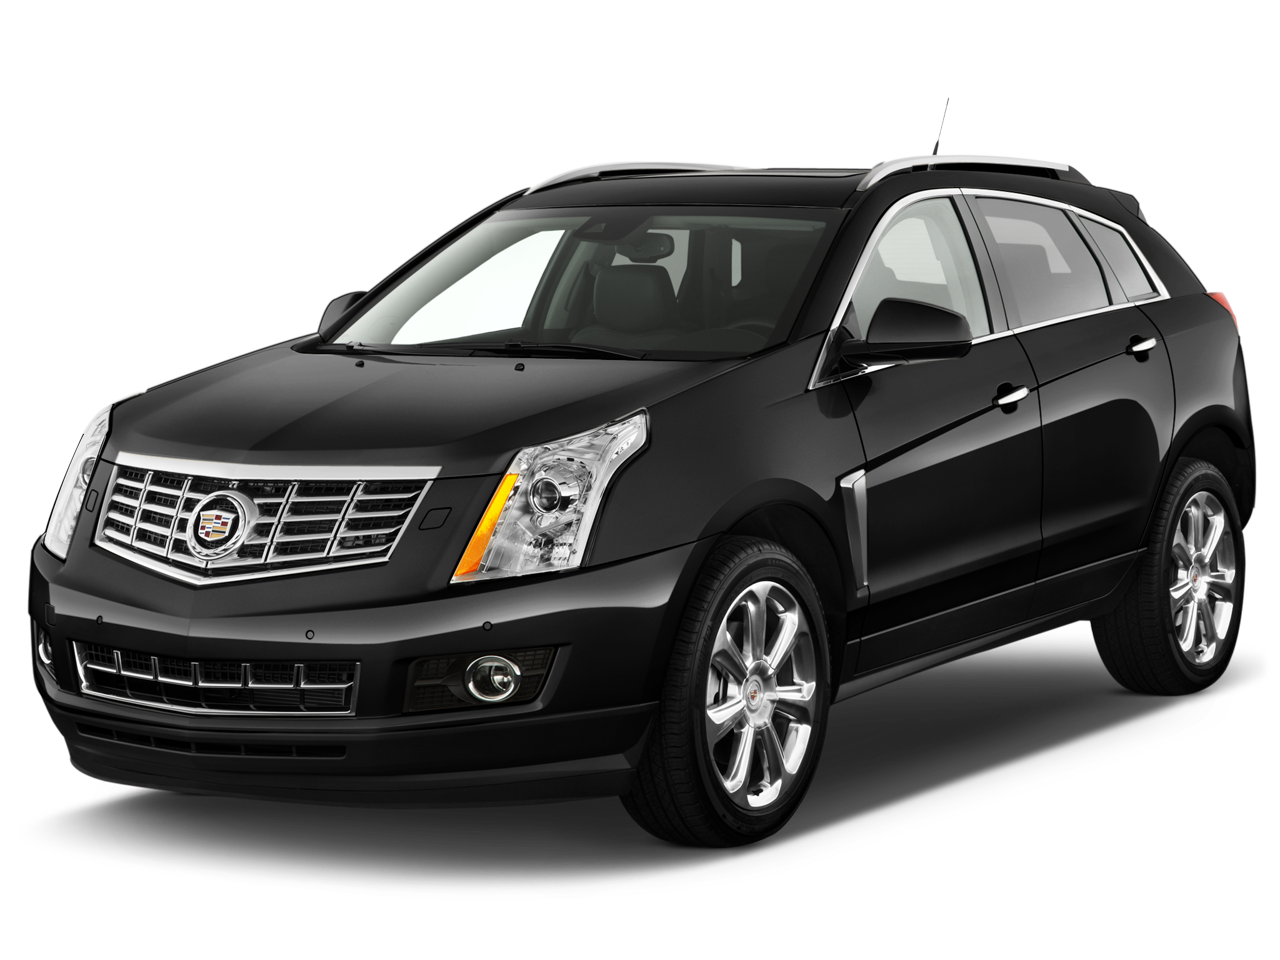 Edge Cts Update >> Cadillac Srx 2014 Body Style Change | Autos Post